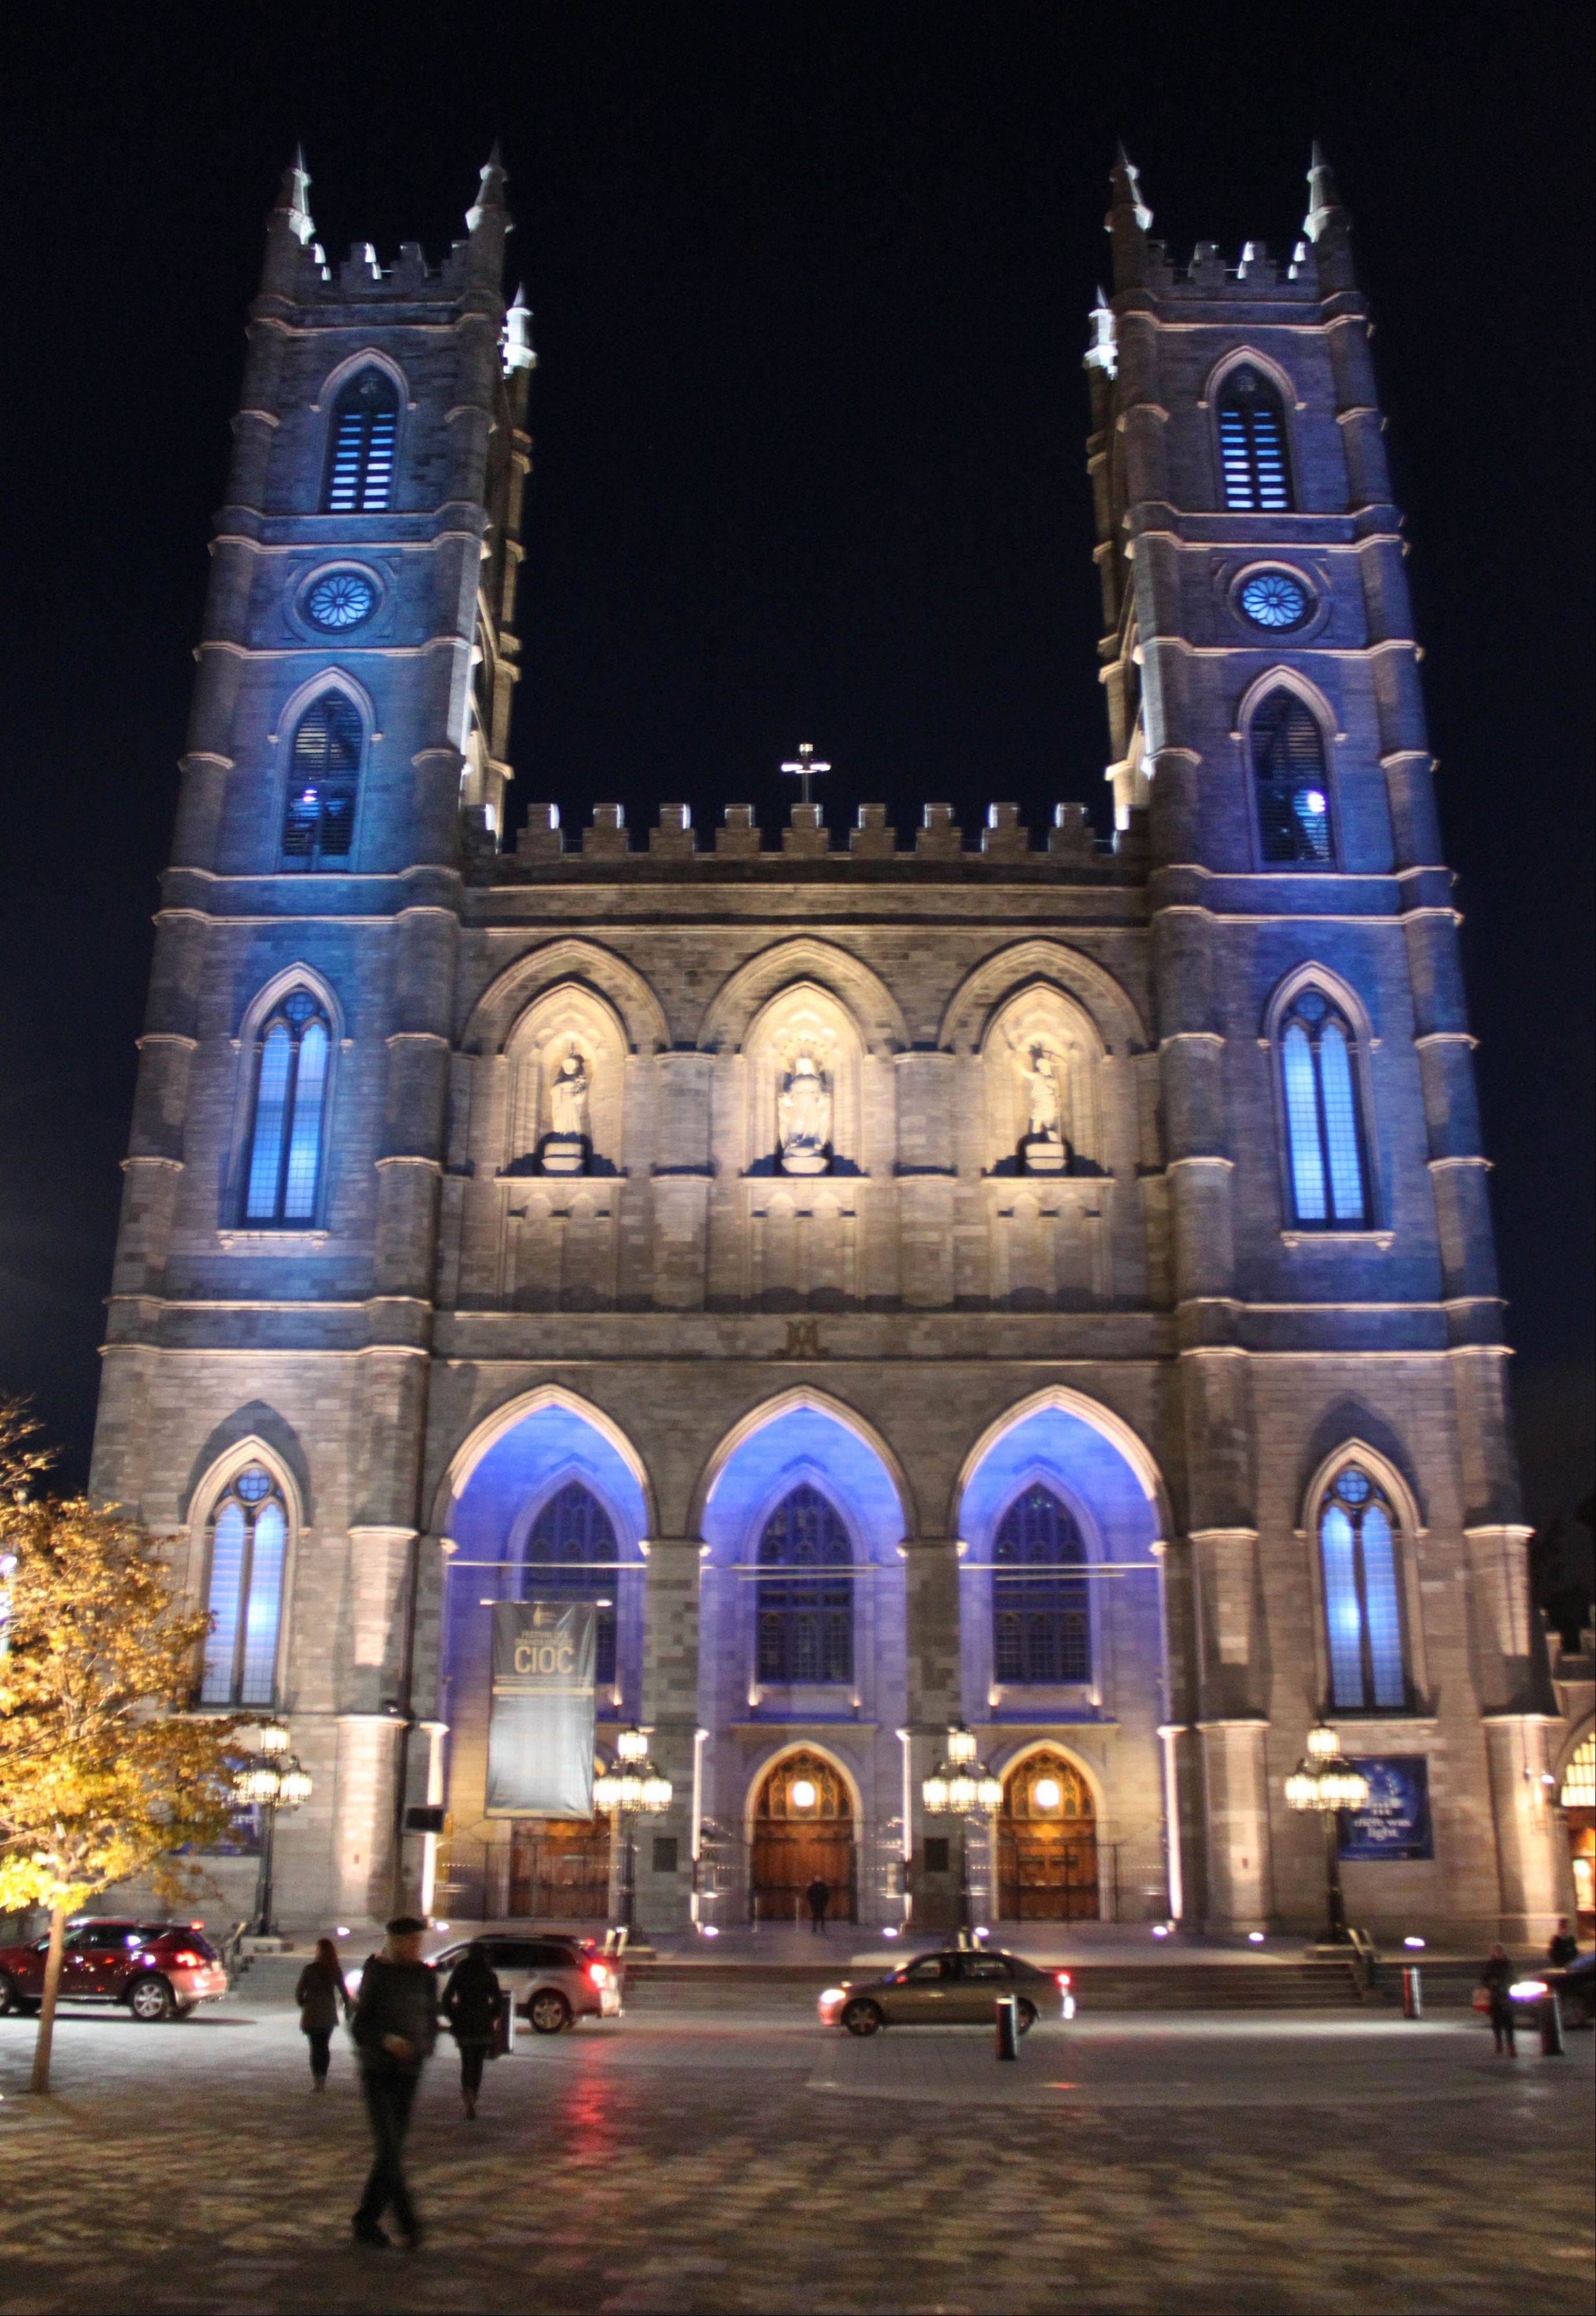 The centuries-old church Notre Dame Basilica is part of the free walking tours in Montreal.